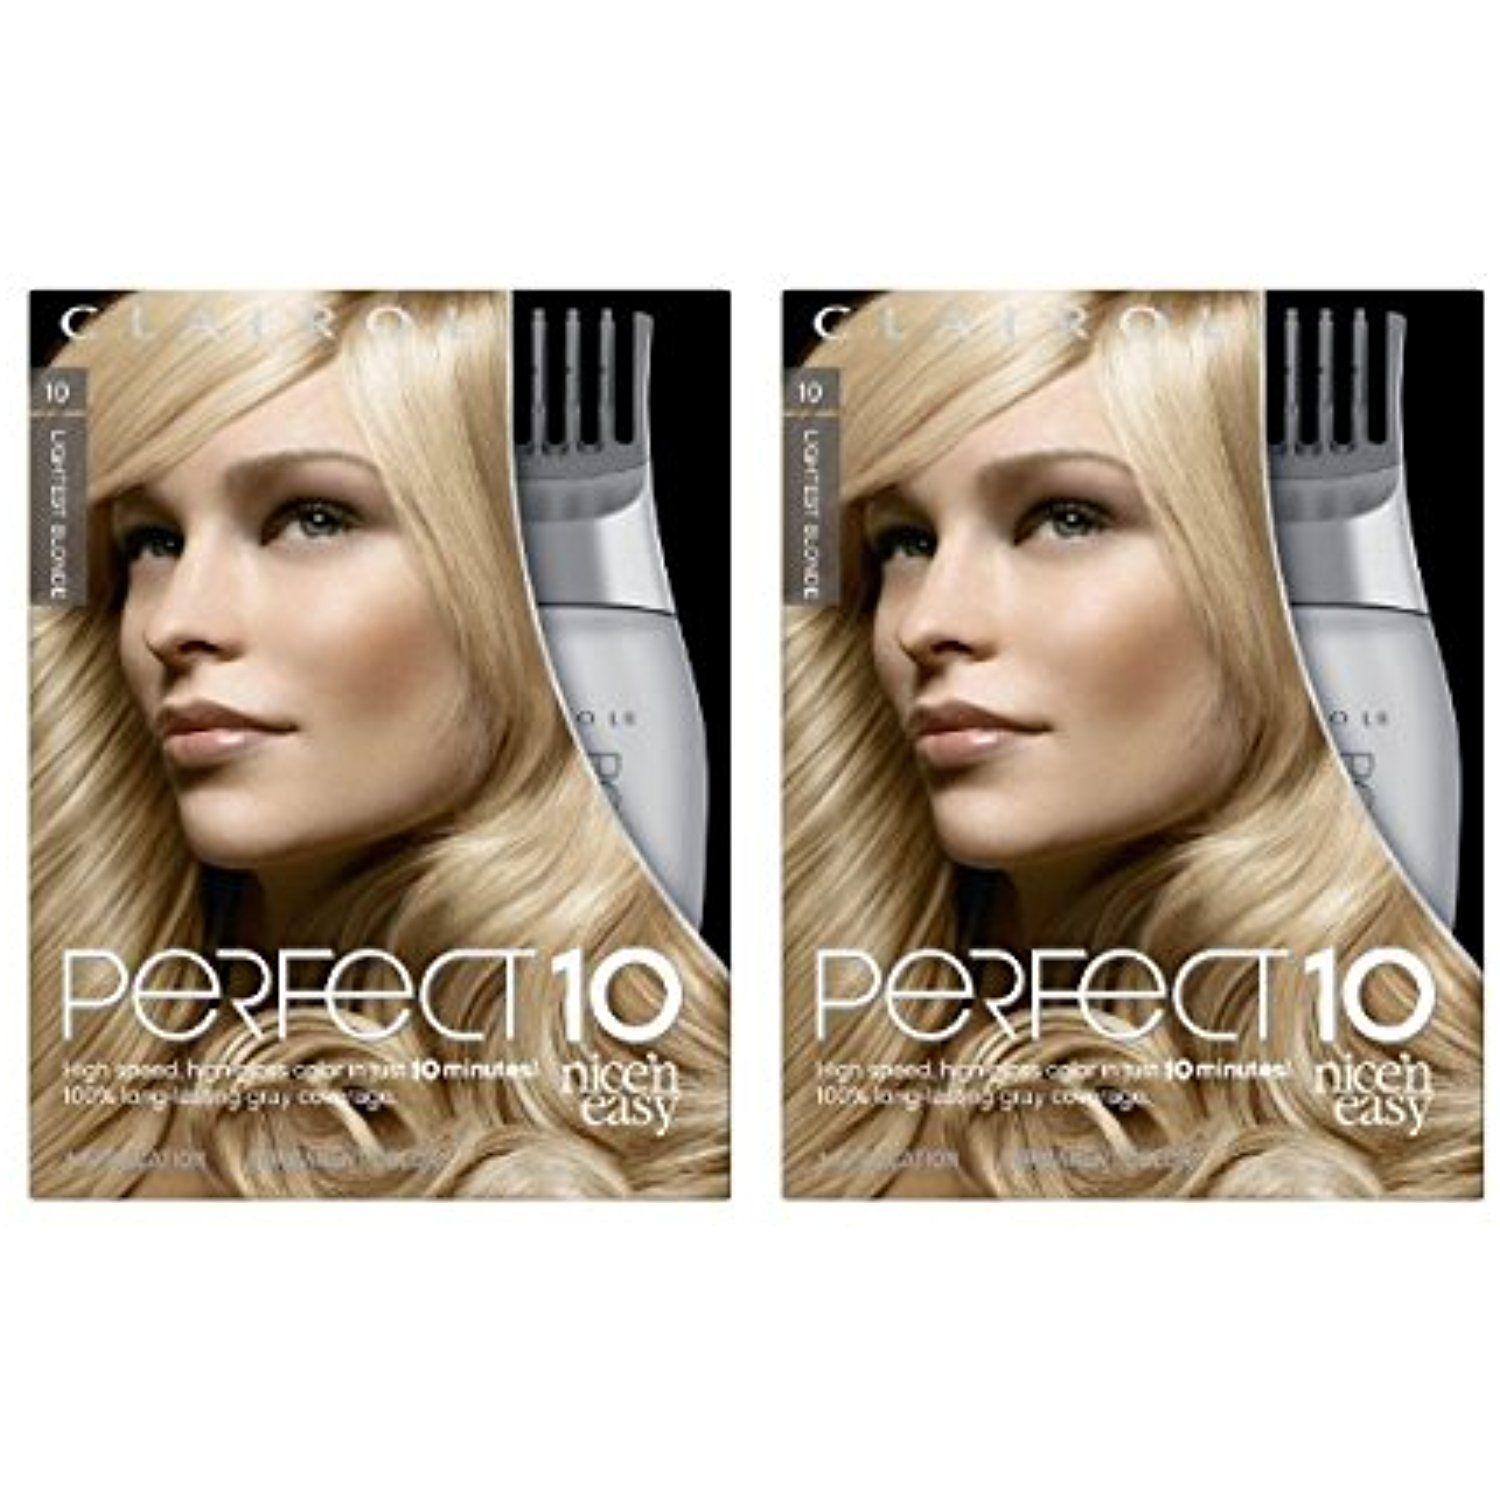 Clairol Perfect 10 By Nice N Easy Hair Color 010 Lightest Blonde 1